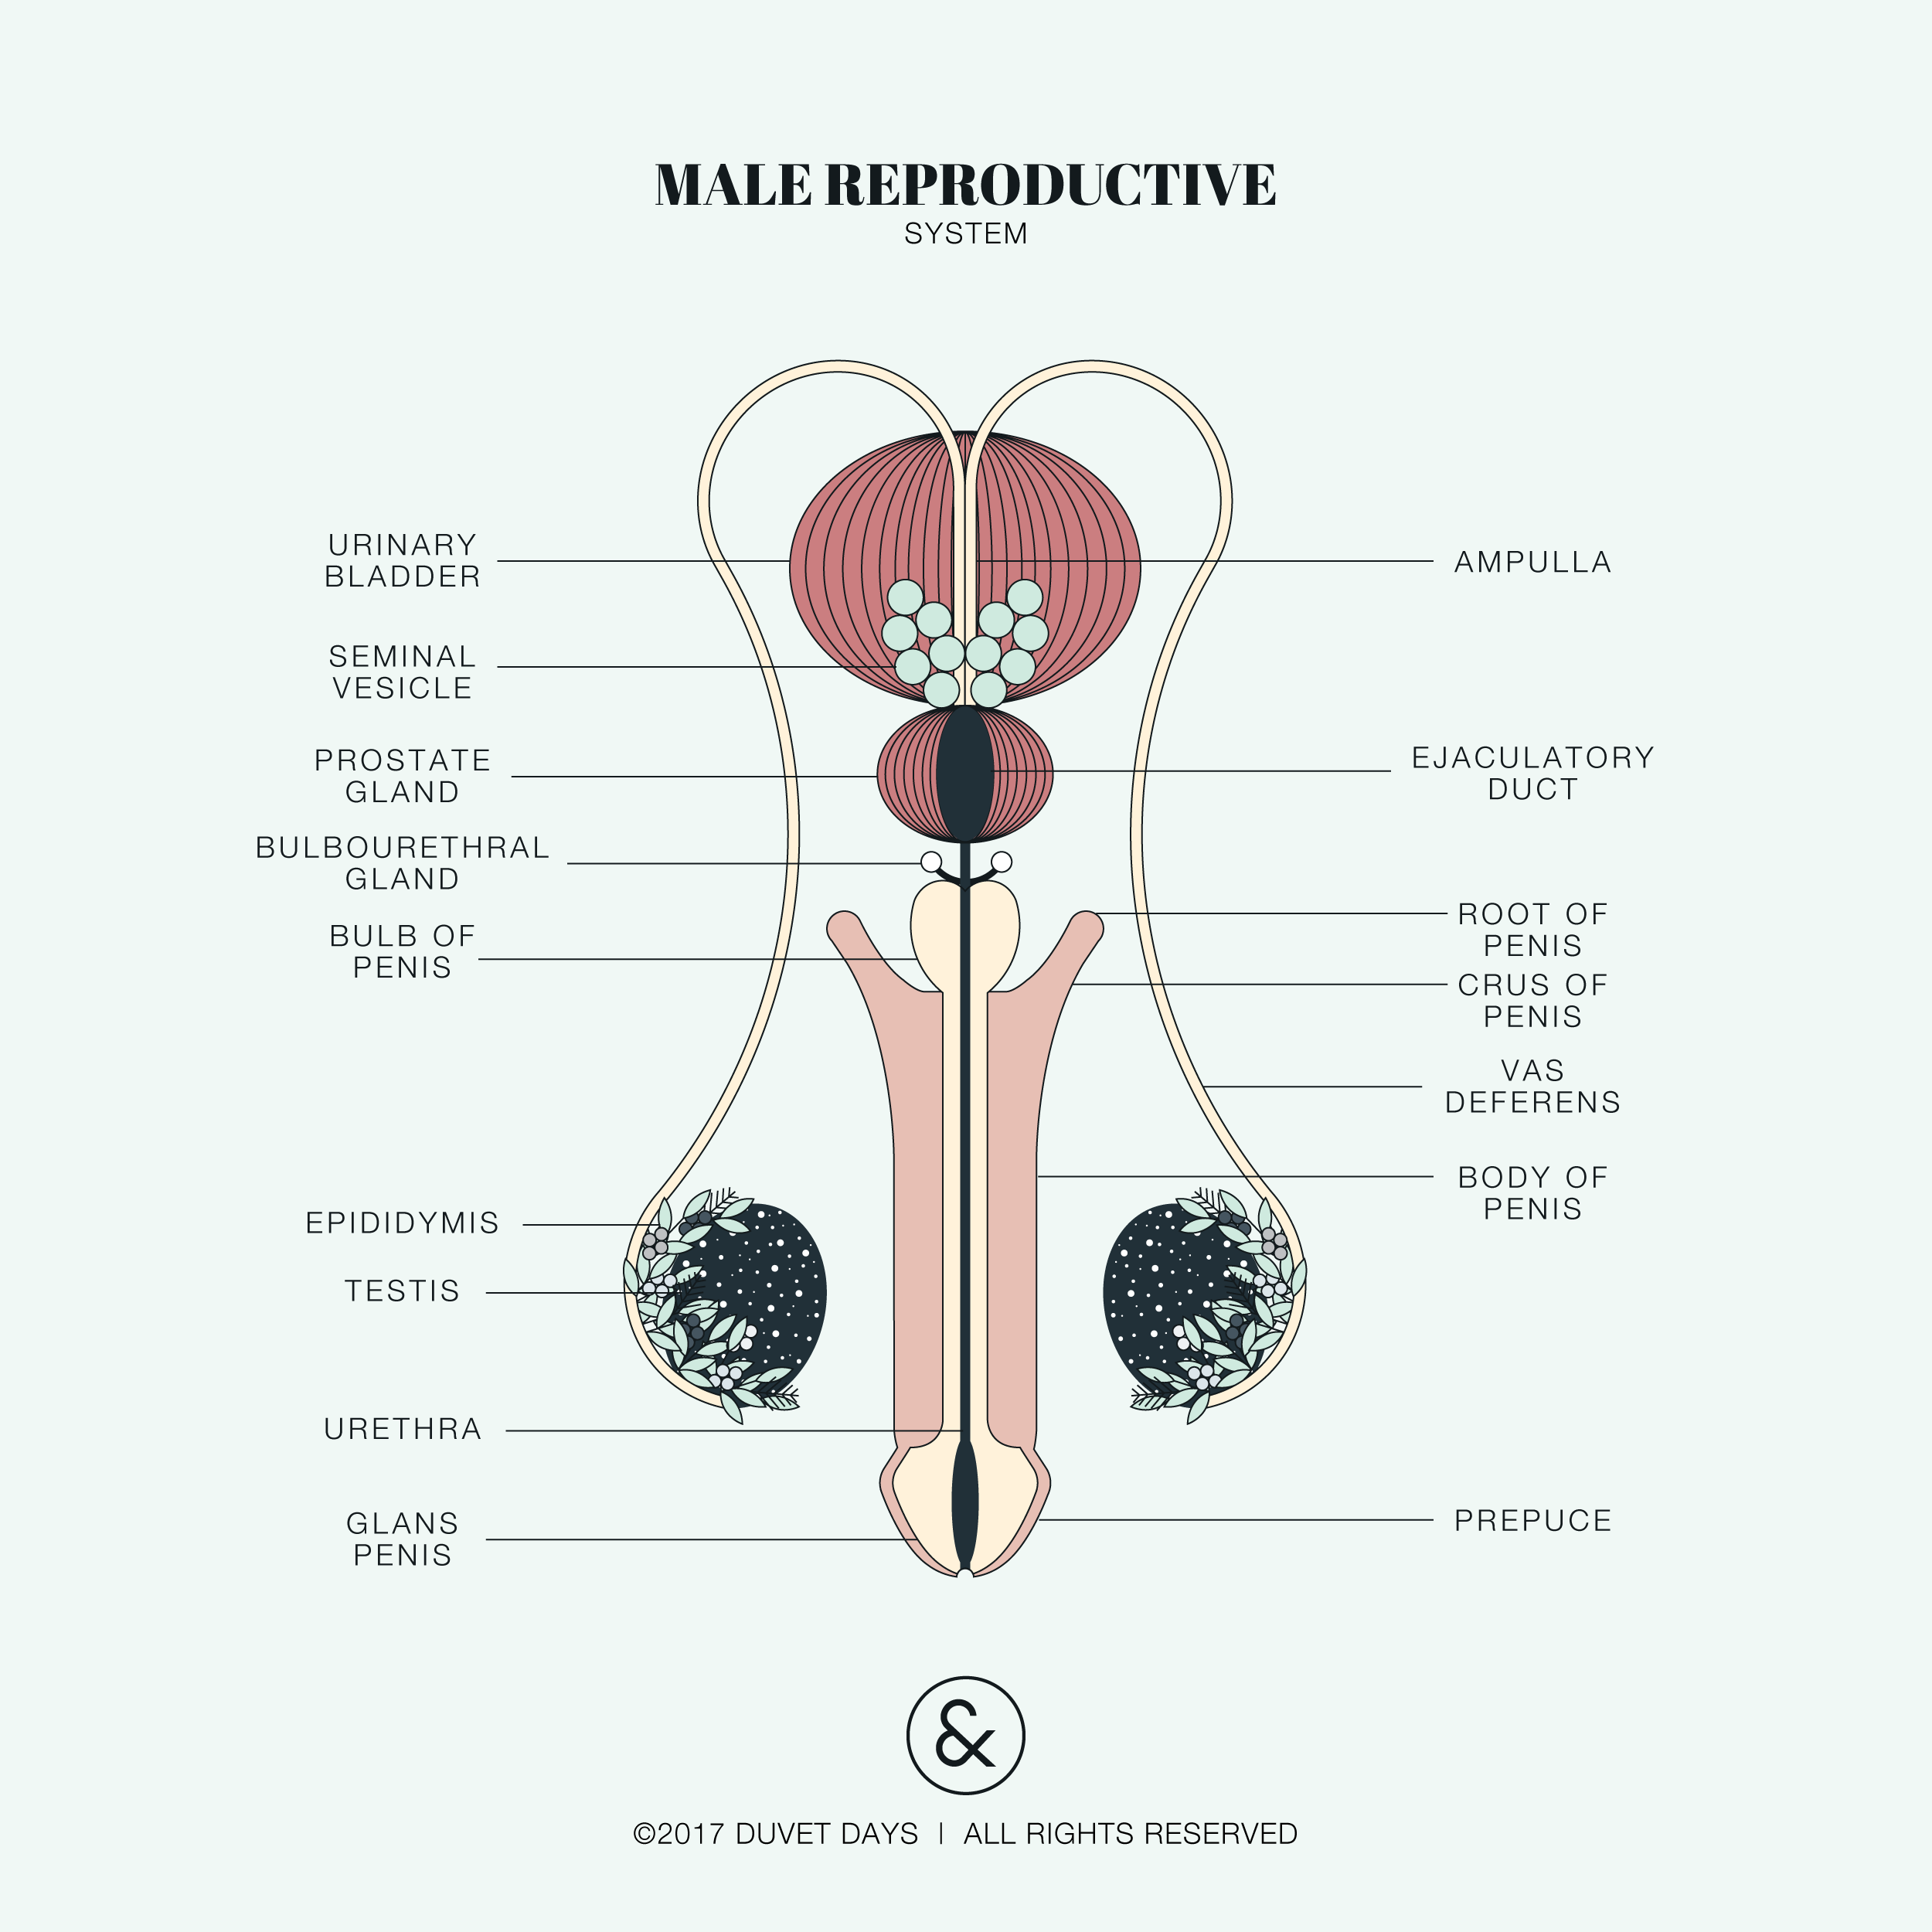 Pin by Graced Intelligence on Anatomy & Physiology | Pinterest ...